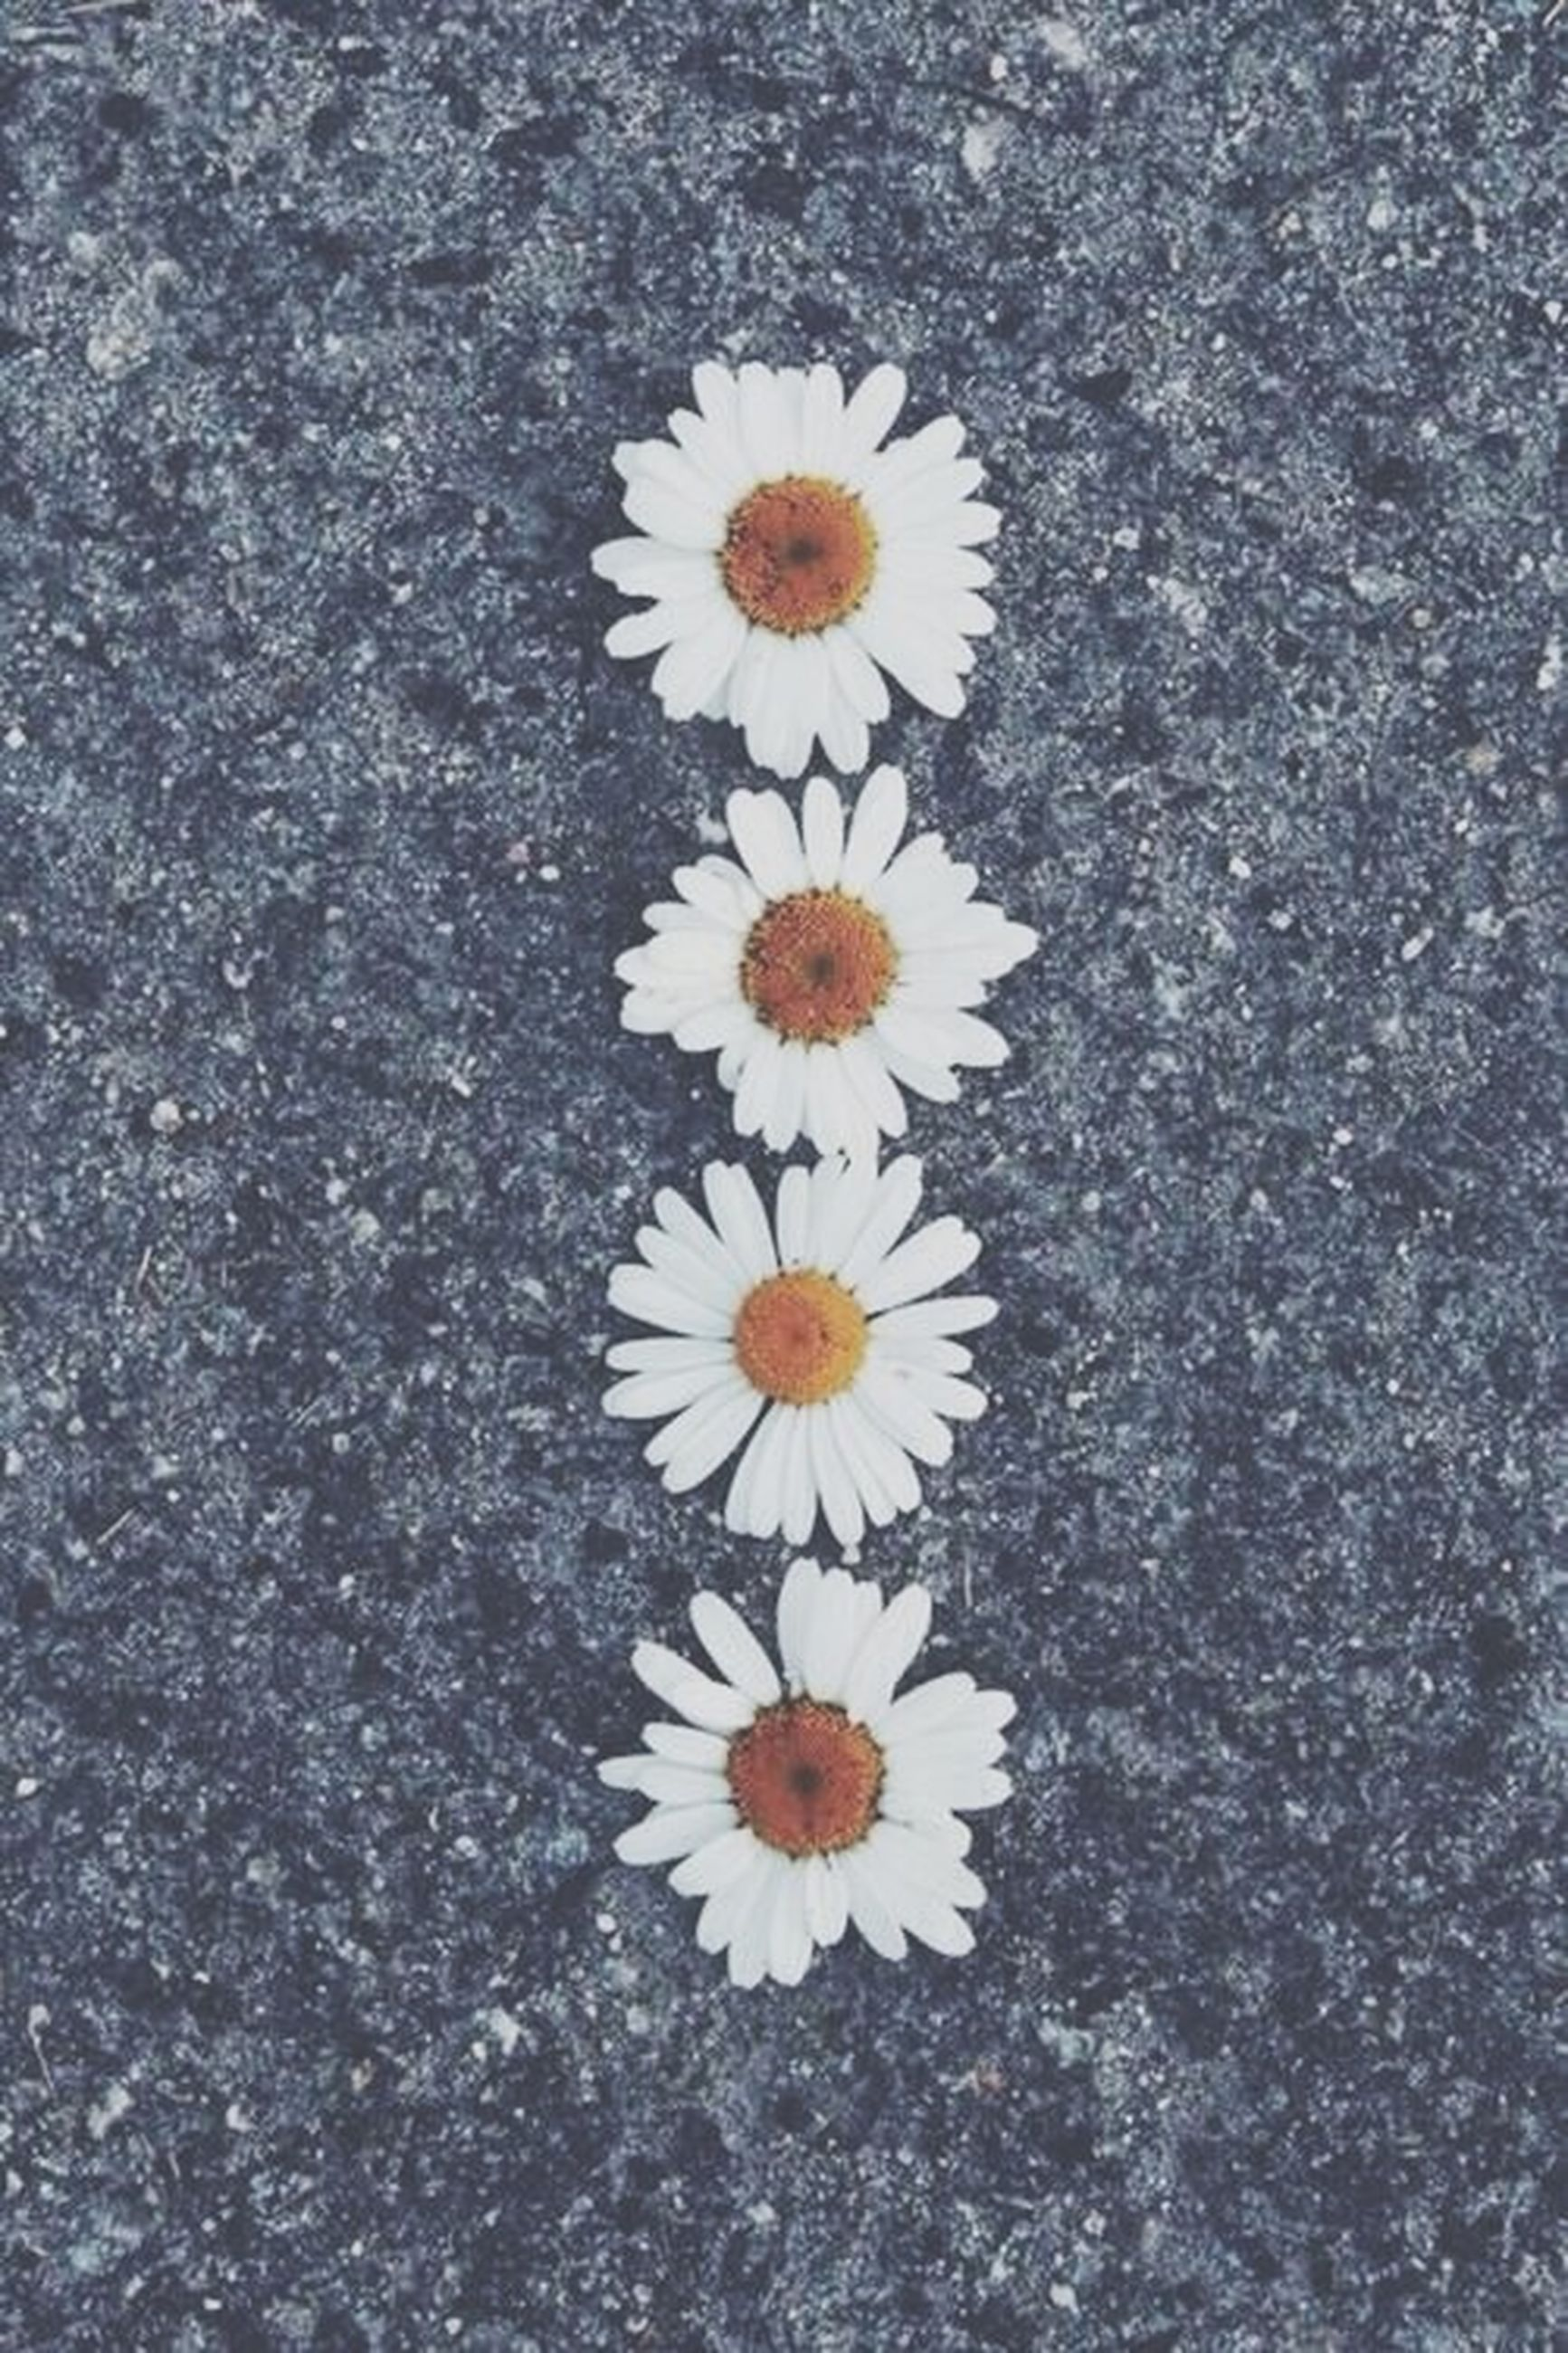 flower, high angle view, fragility, white color, petal, freshness, nature, directly above, flower head, daisy, asphalt, beauty in nature, growth, ground, day, outdoors, field, no people, white, close-up